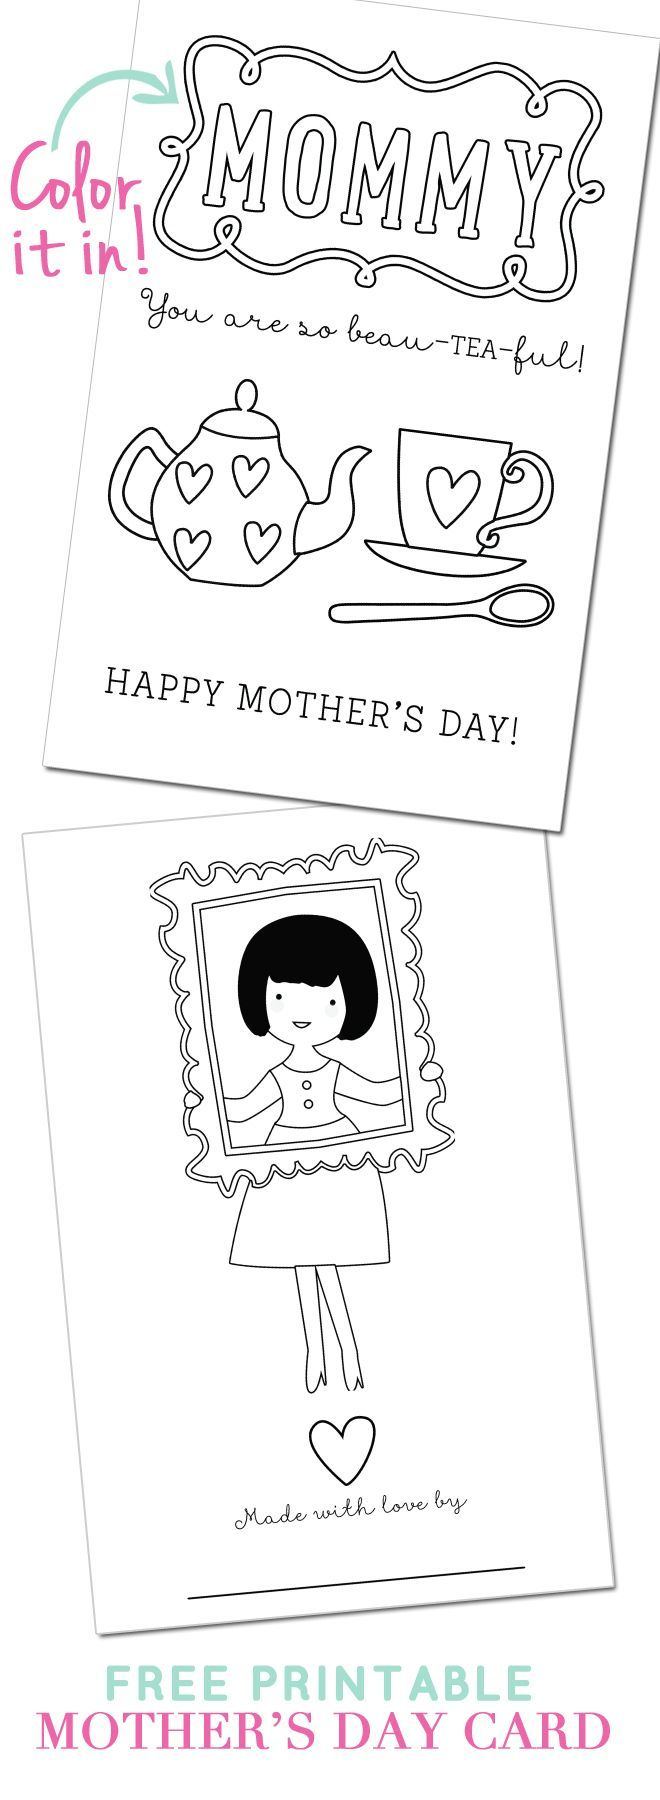 Best MotherS Day Activities Images On   MotherS Day